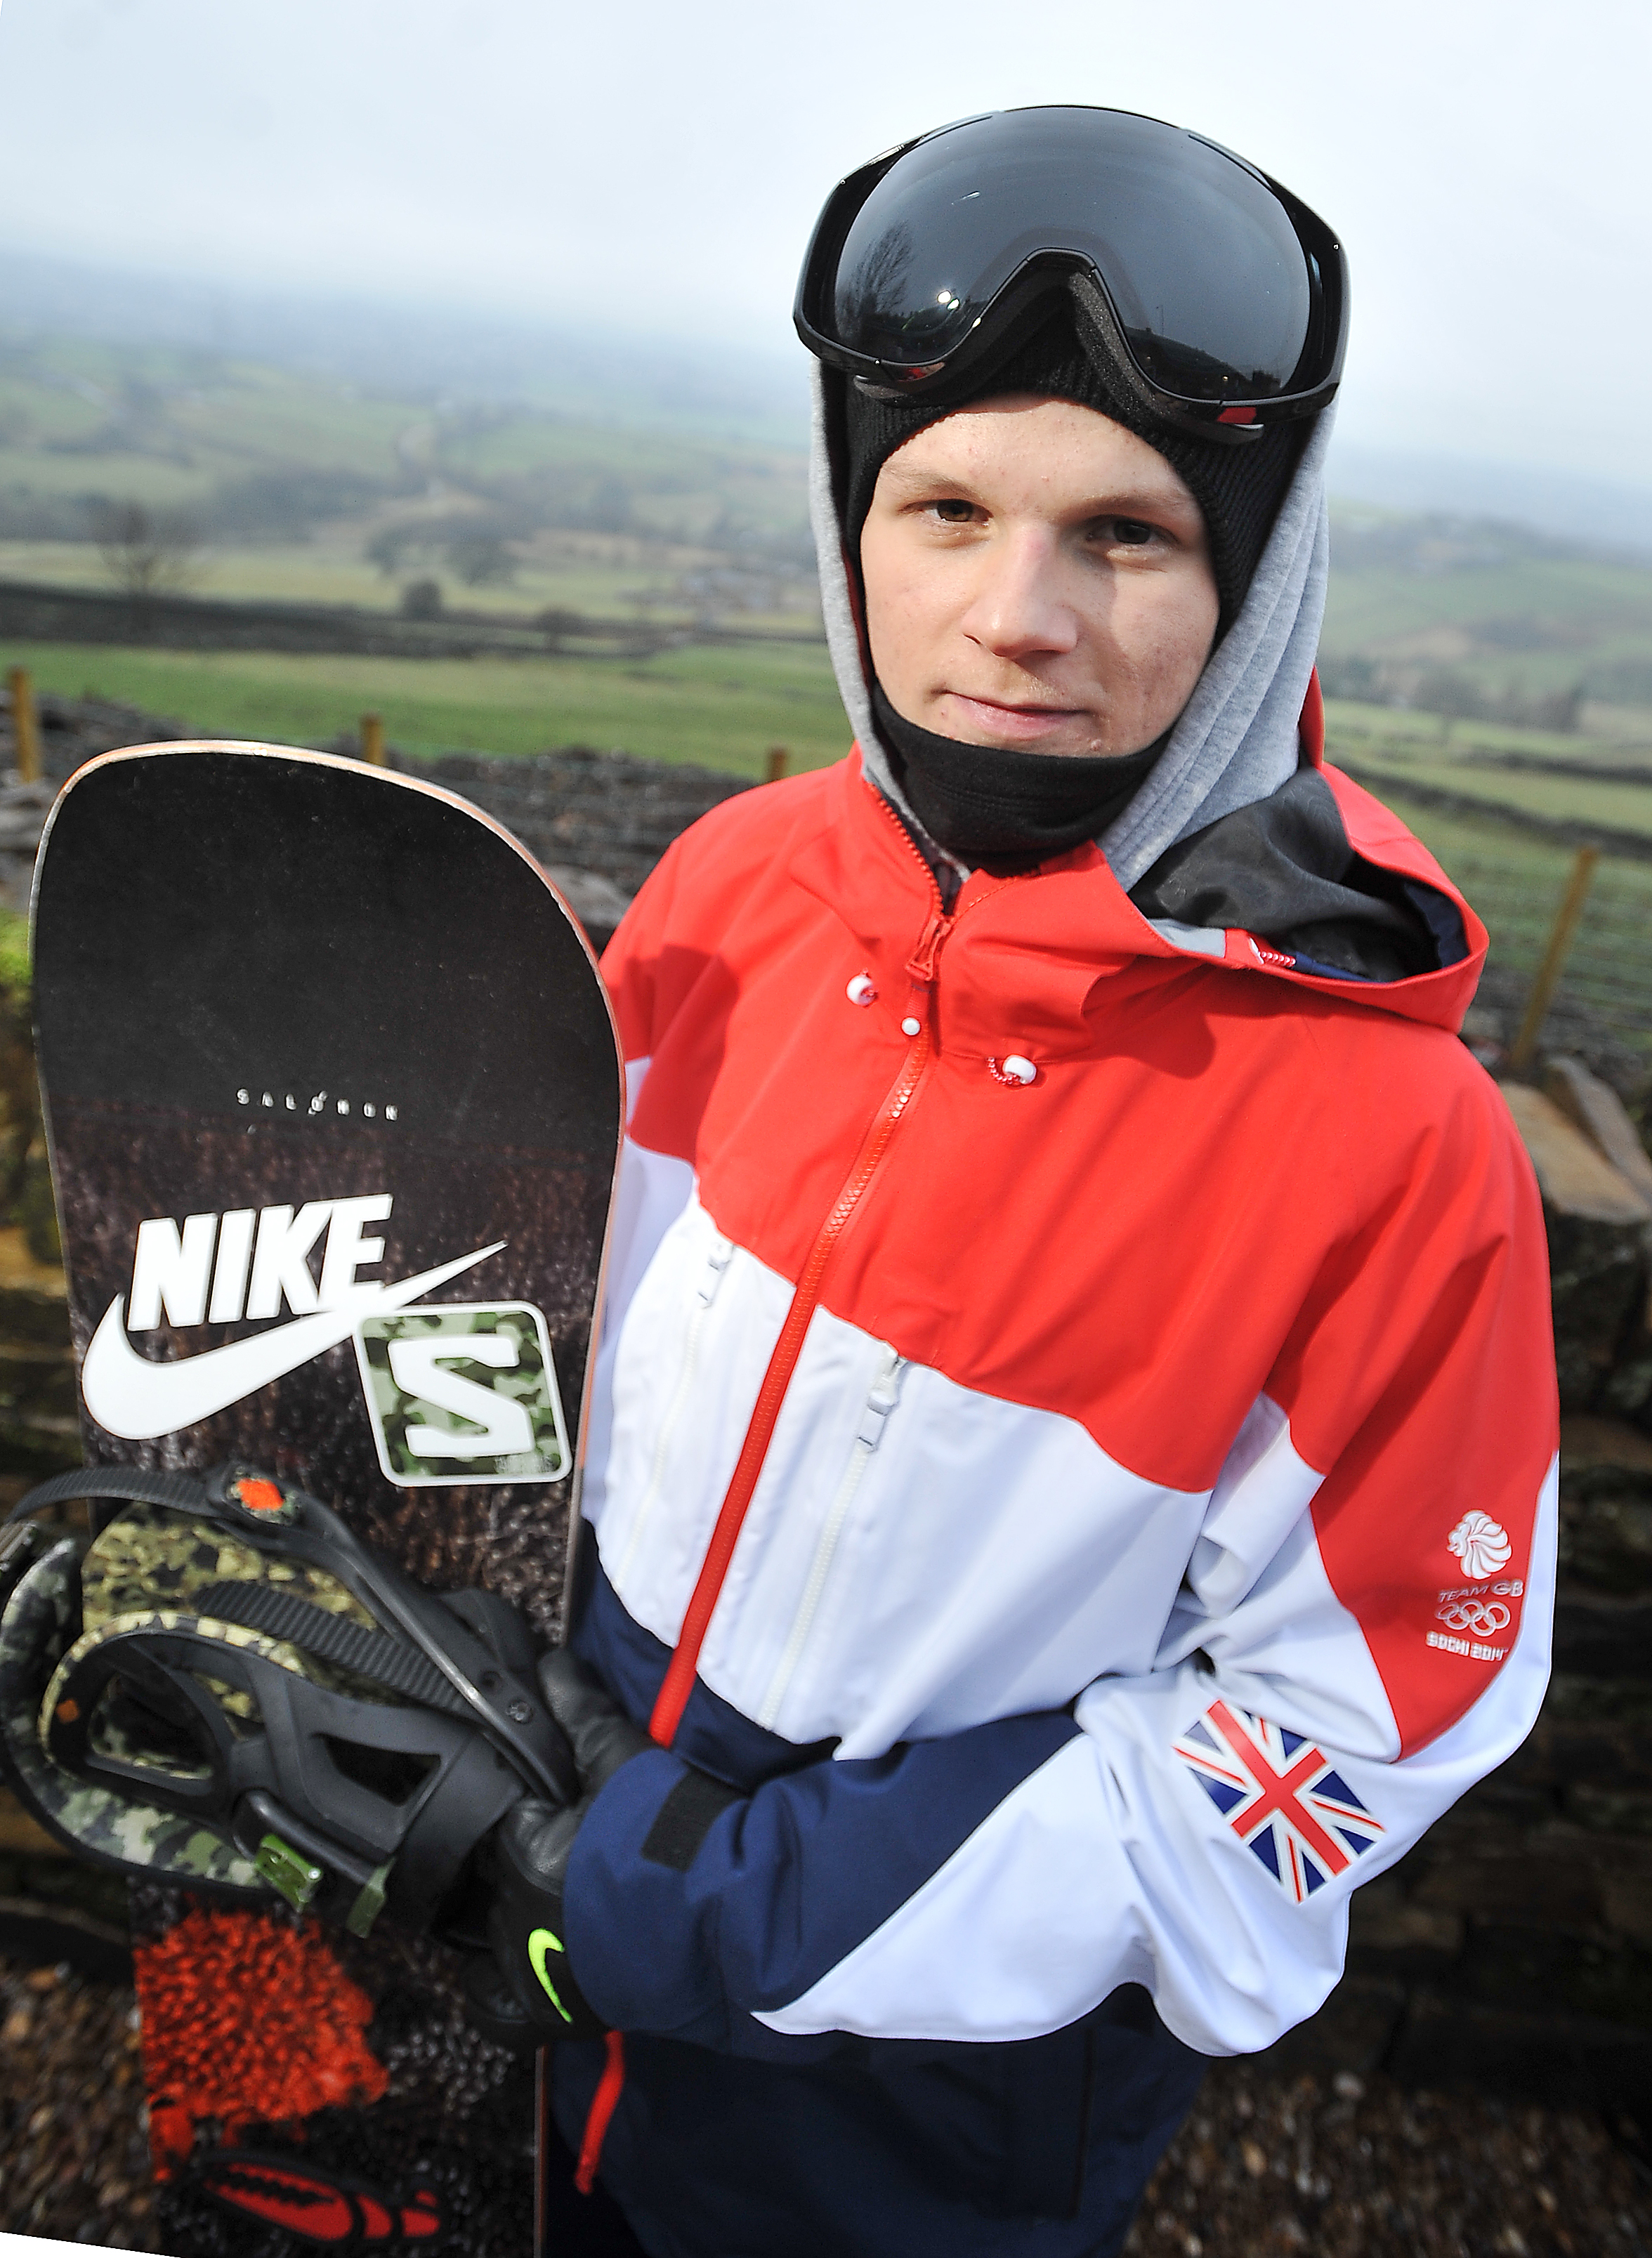 Jamie Nicholls poses for our T&A snapper in full GB kit outside his Queensbury home as he prepares to jet off to Russia